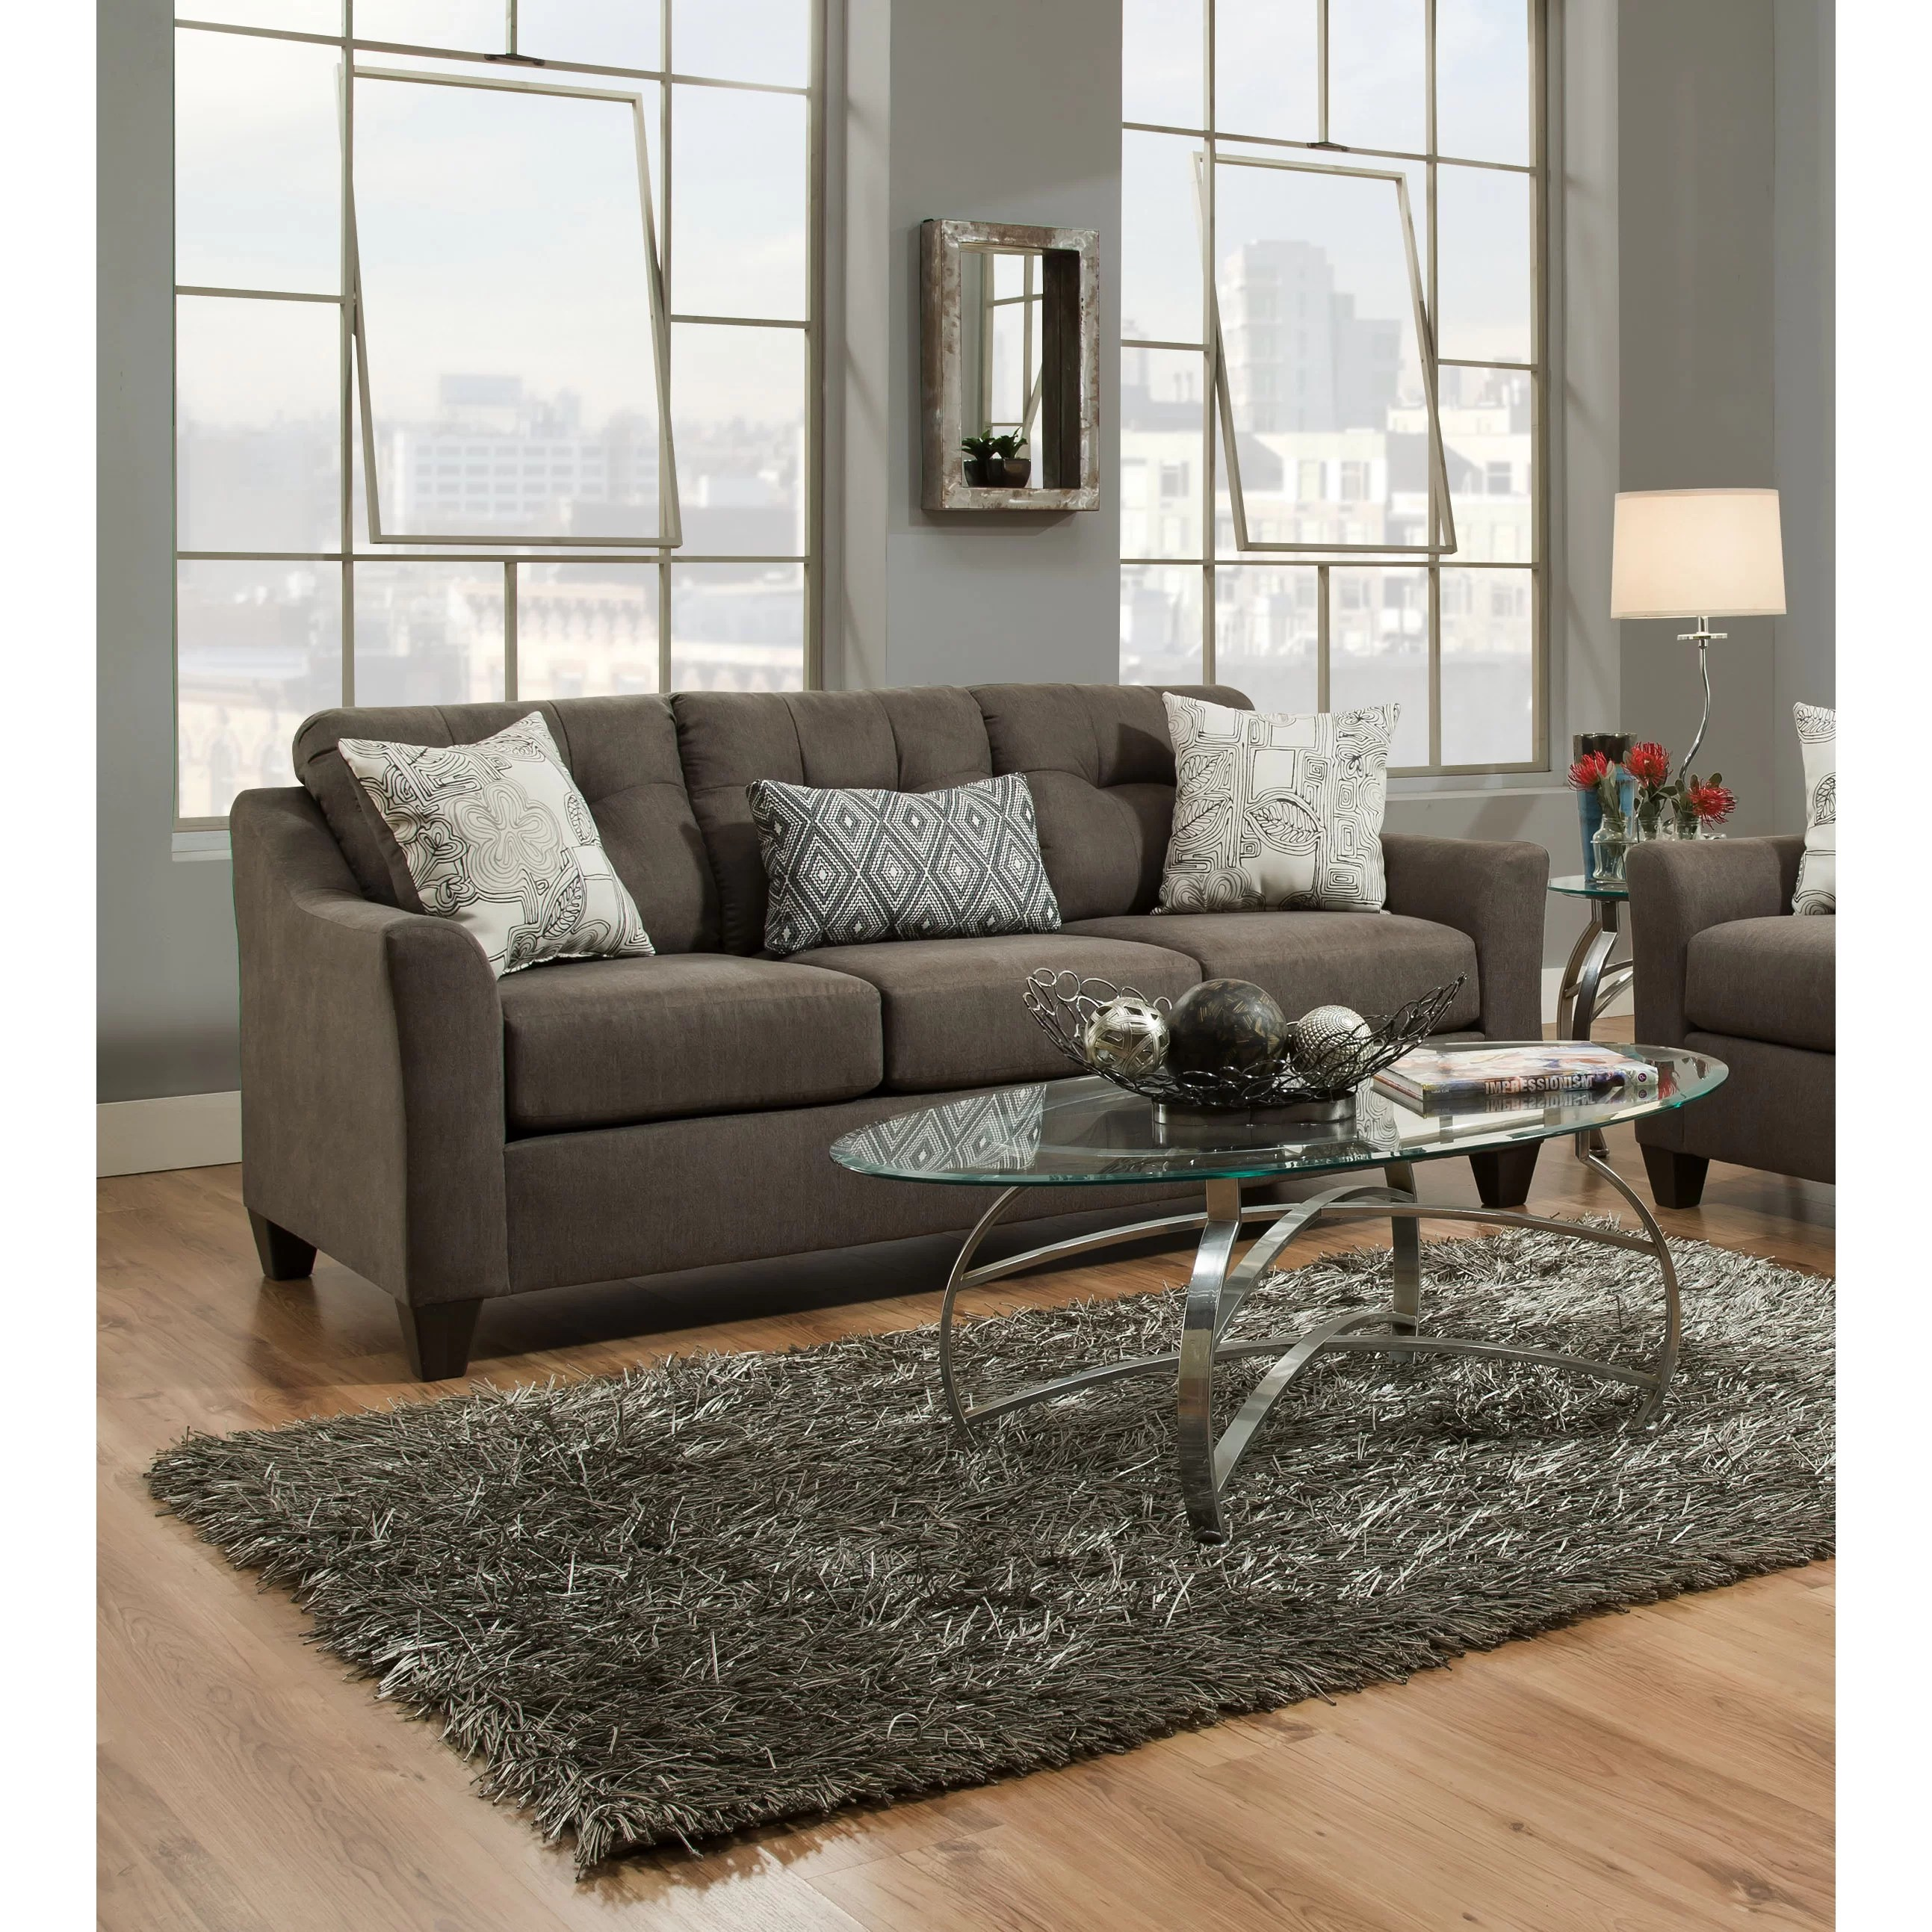 Exceptional Simmons Sleeper Sofa Reviews Sectional Sofas